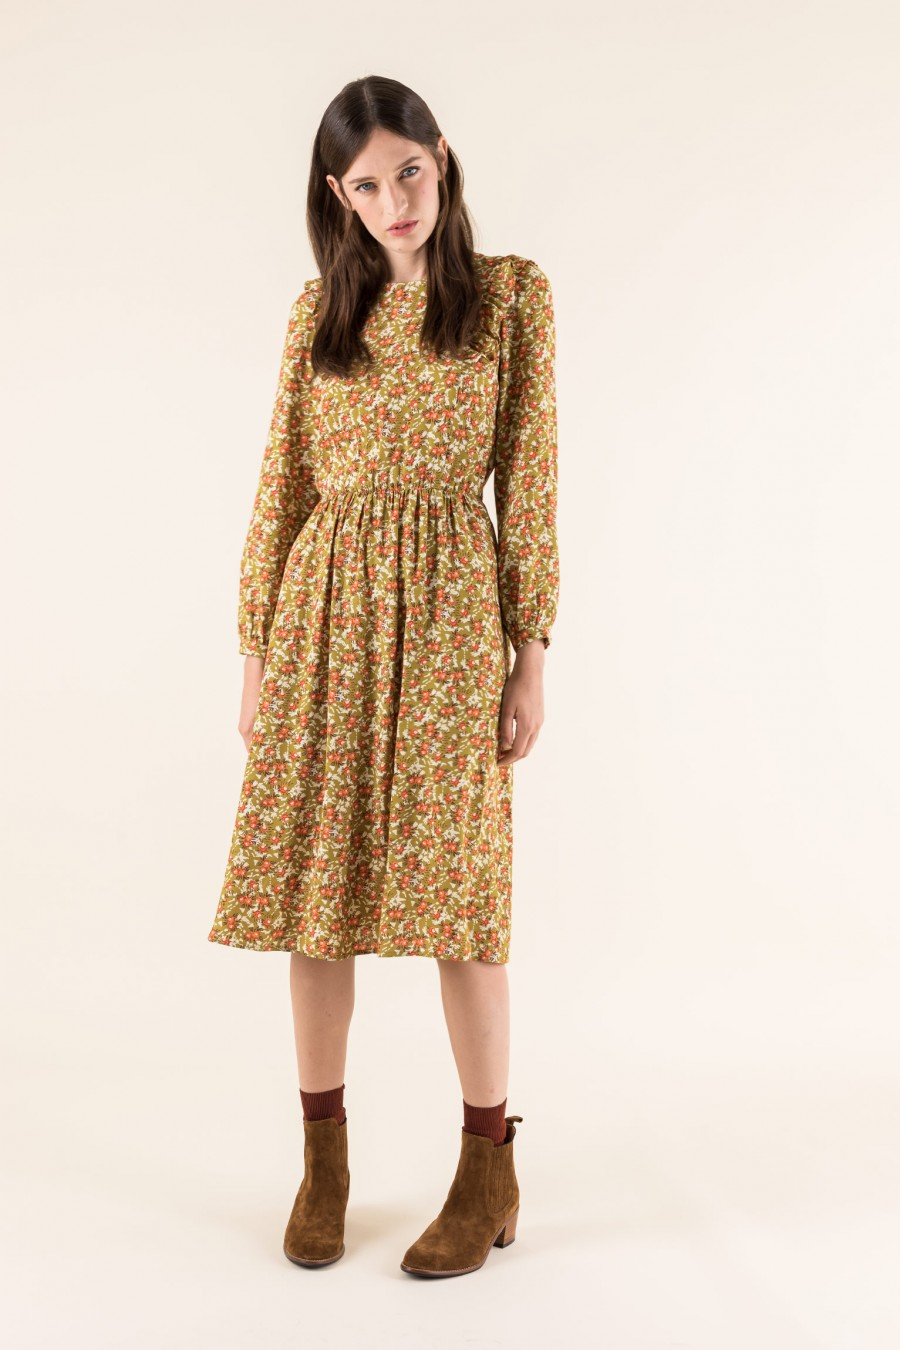 Floreal dress with long sleeves